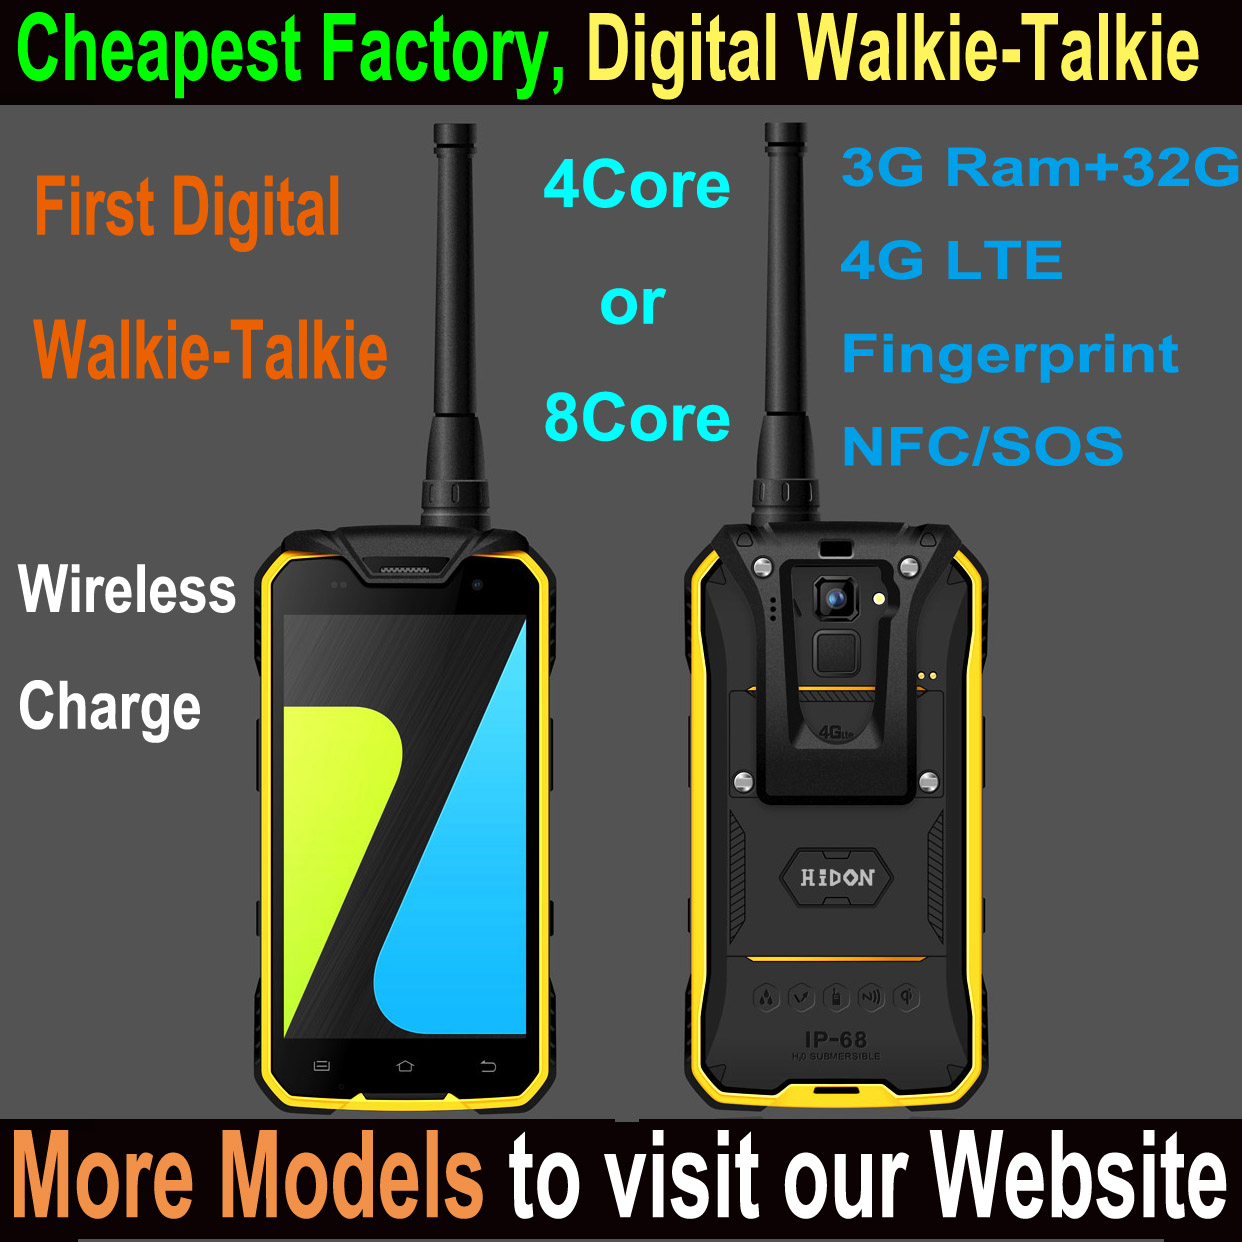 Highton 8-core 4.7 inch digital walkie-talkie rugged smartphone with NFC fingerprint scanner waterproof Smartphone